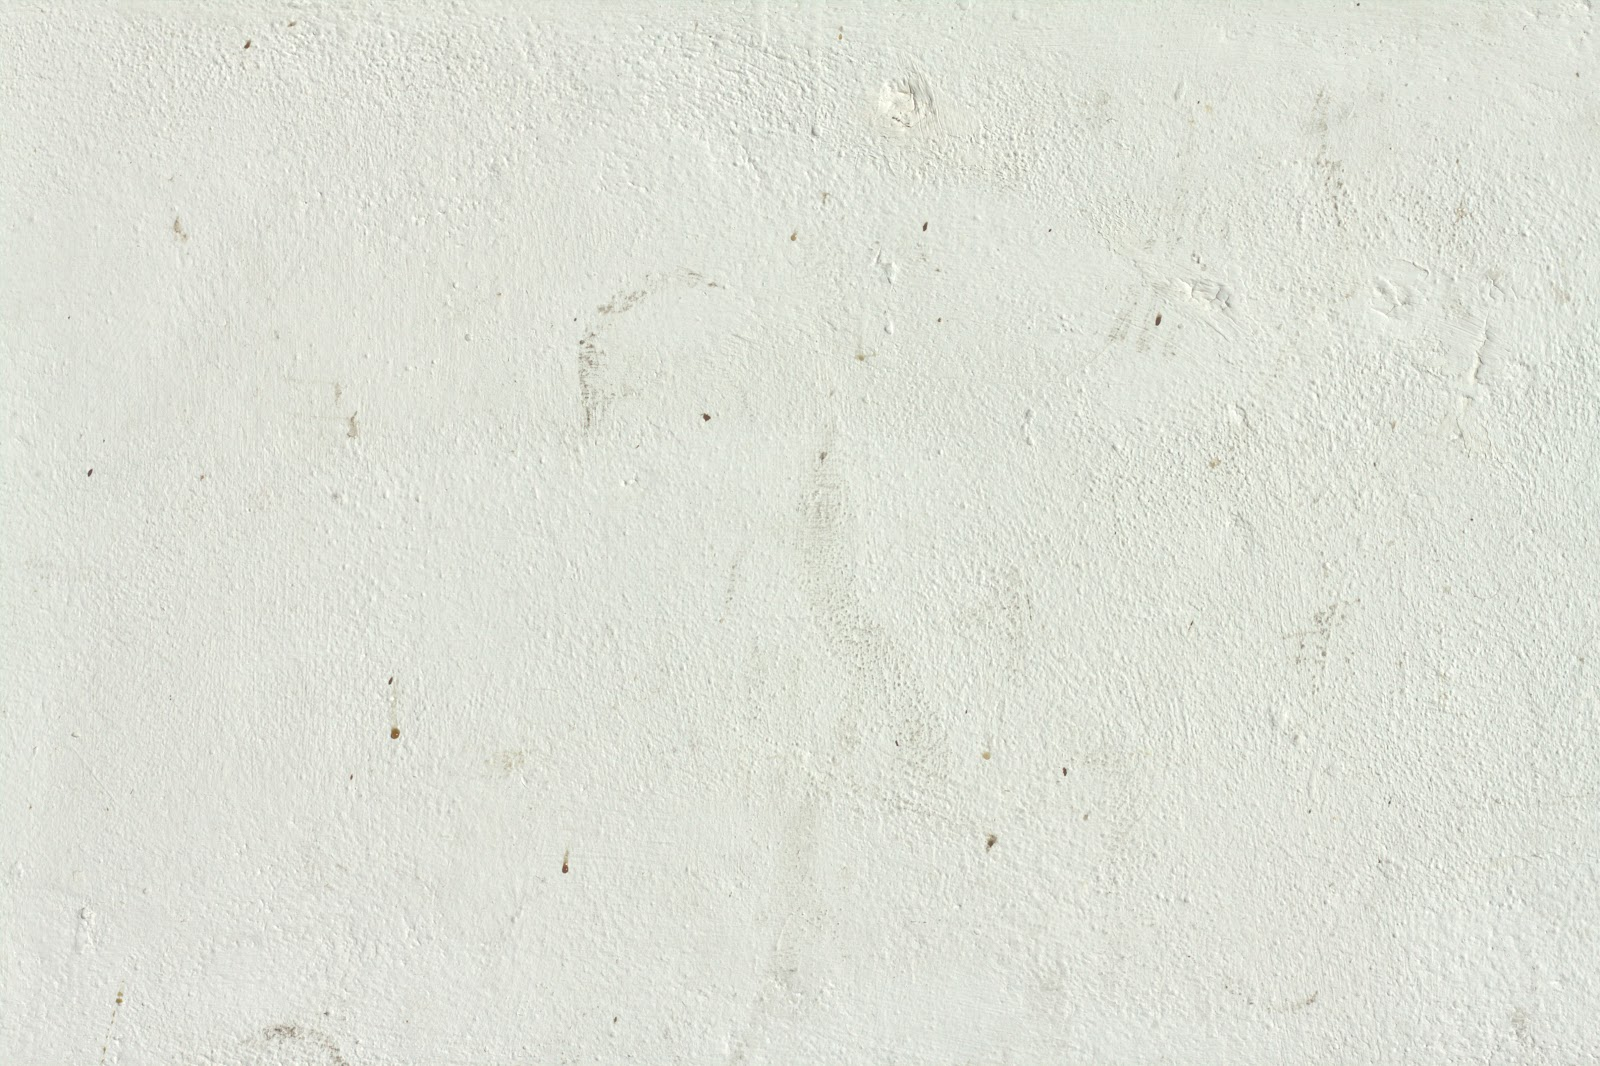 Stucco white dirty wall plaster texture 4770x3178